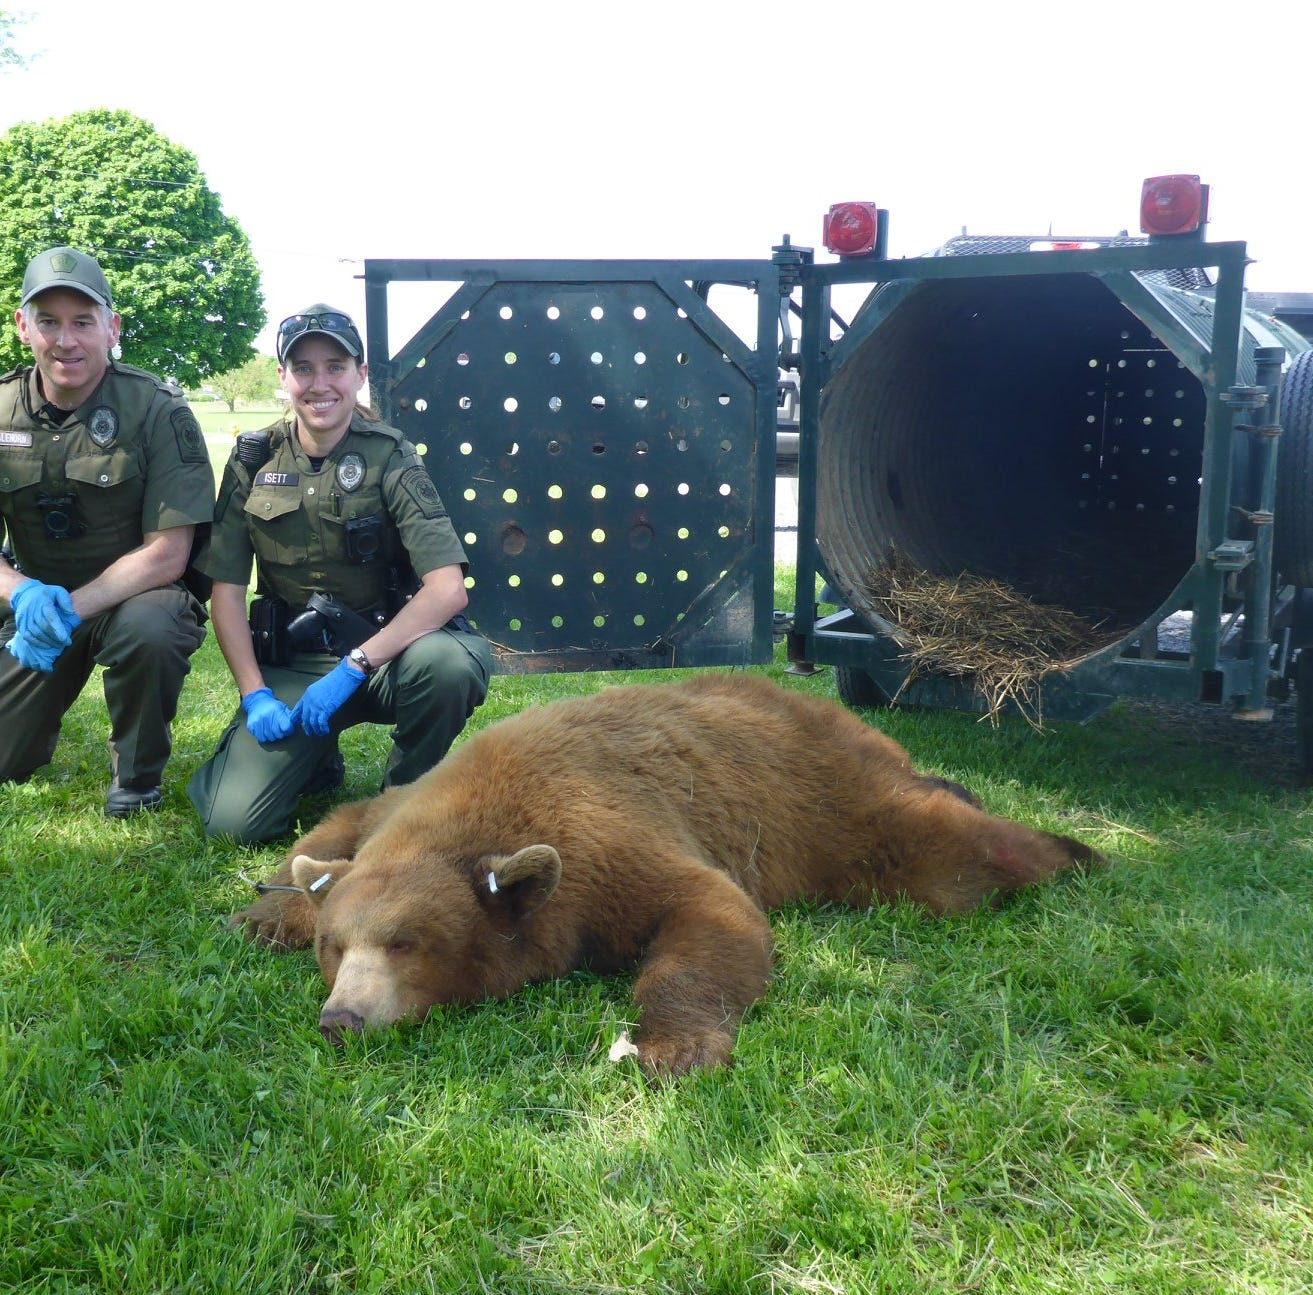 Game Commission traps cinnamon bear in central Pa., weighs over 330 pounds